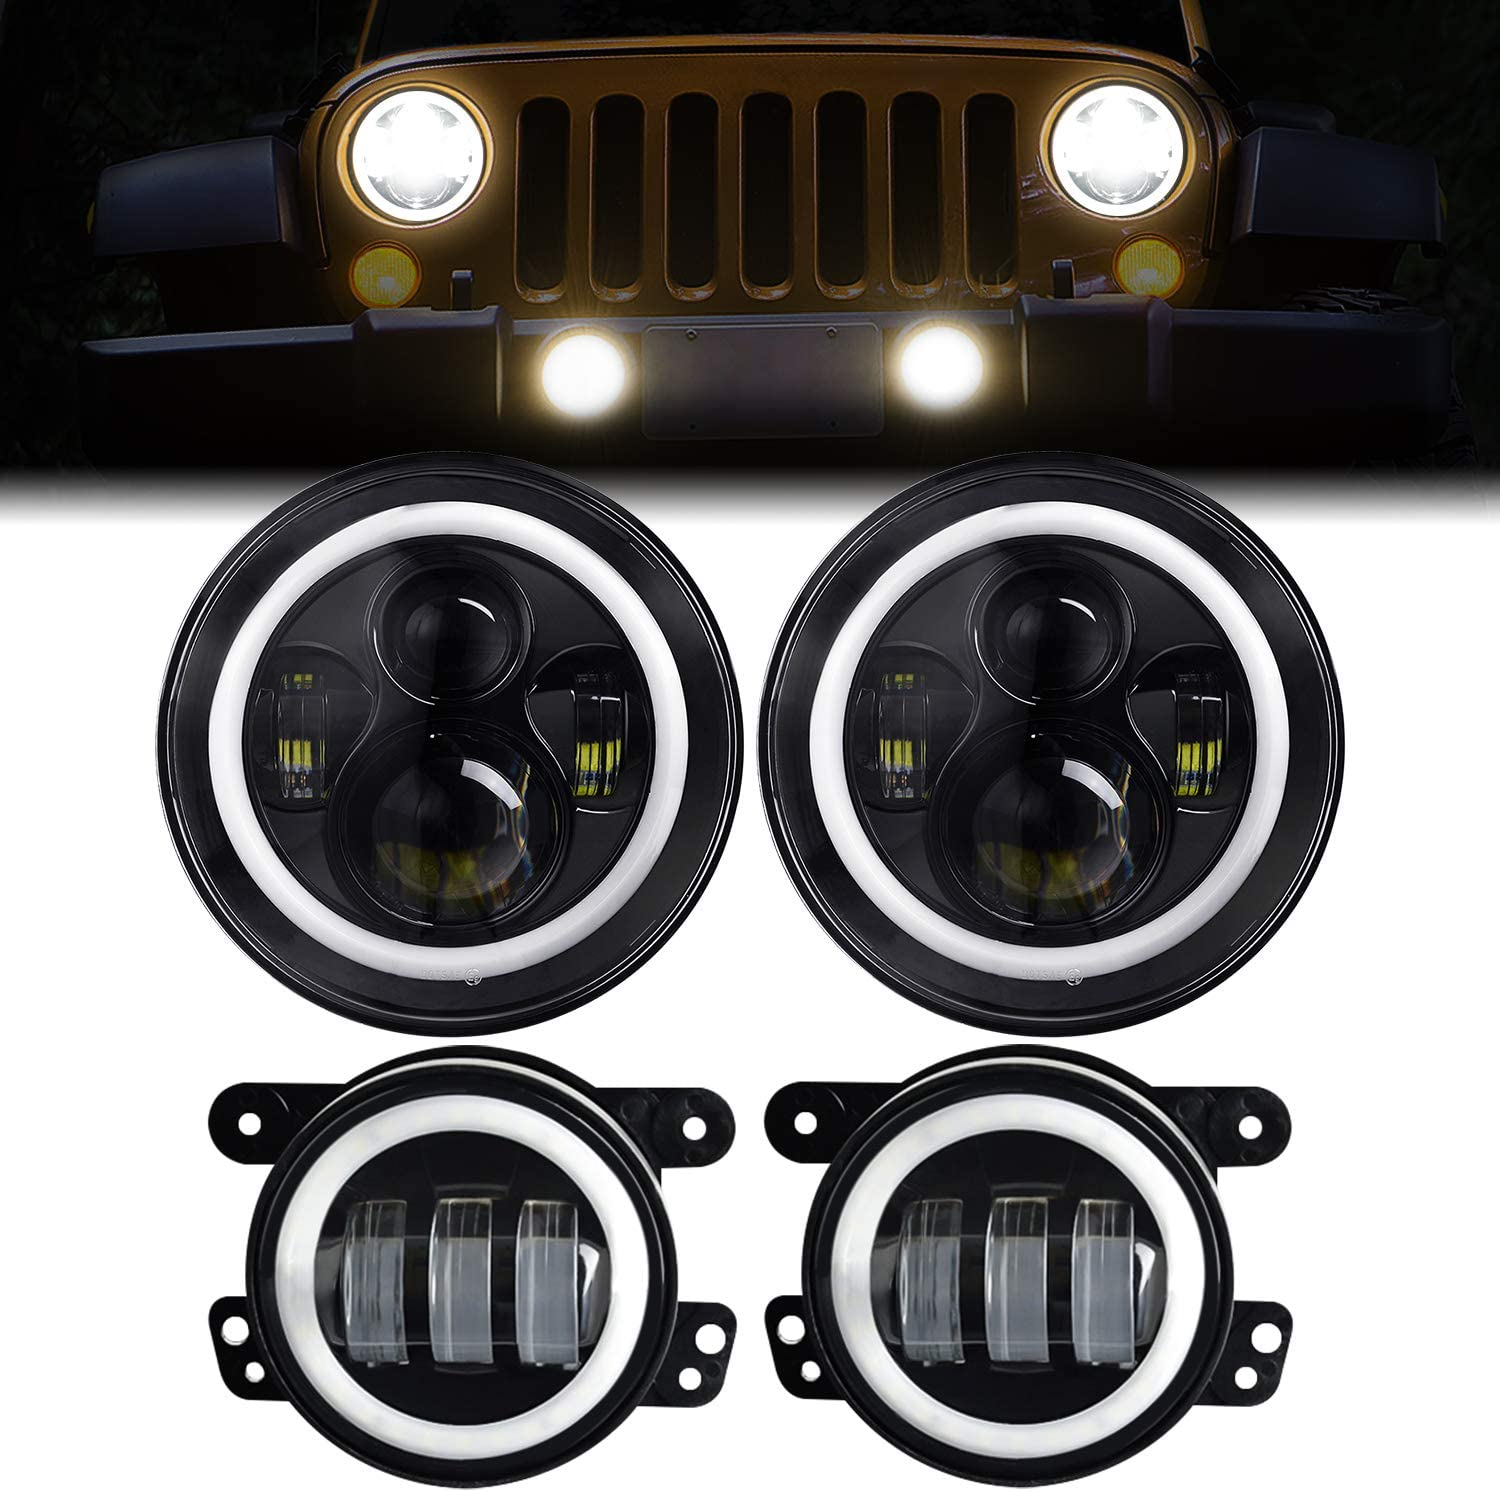 7 Inch 80W CREE LED Headlights with Side and Turn Signal Combo 07-17 Jeep JK